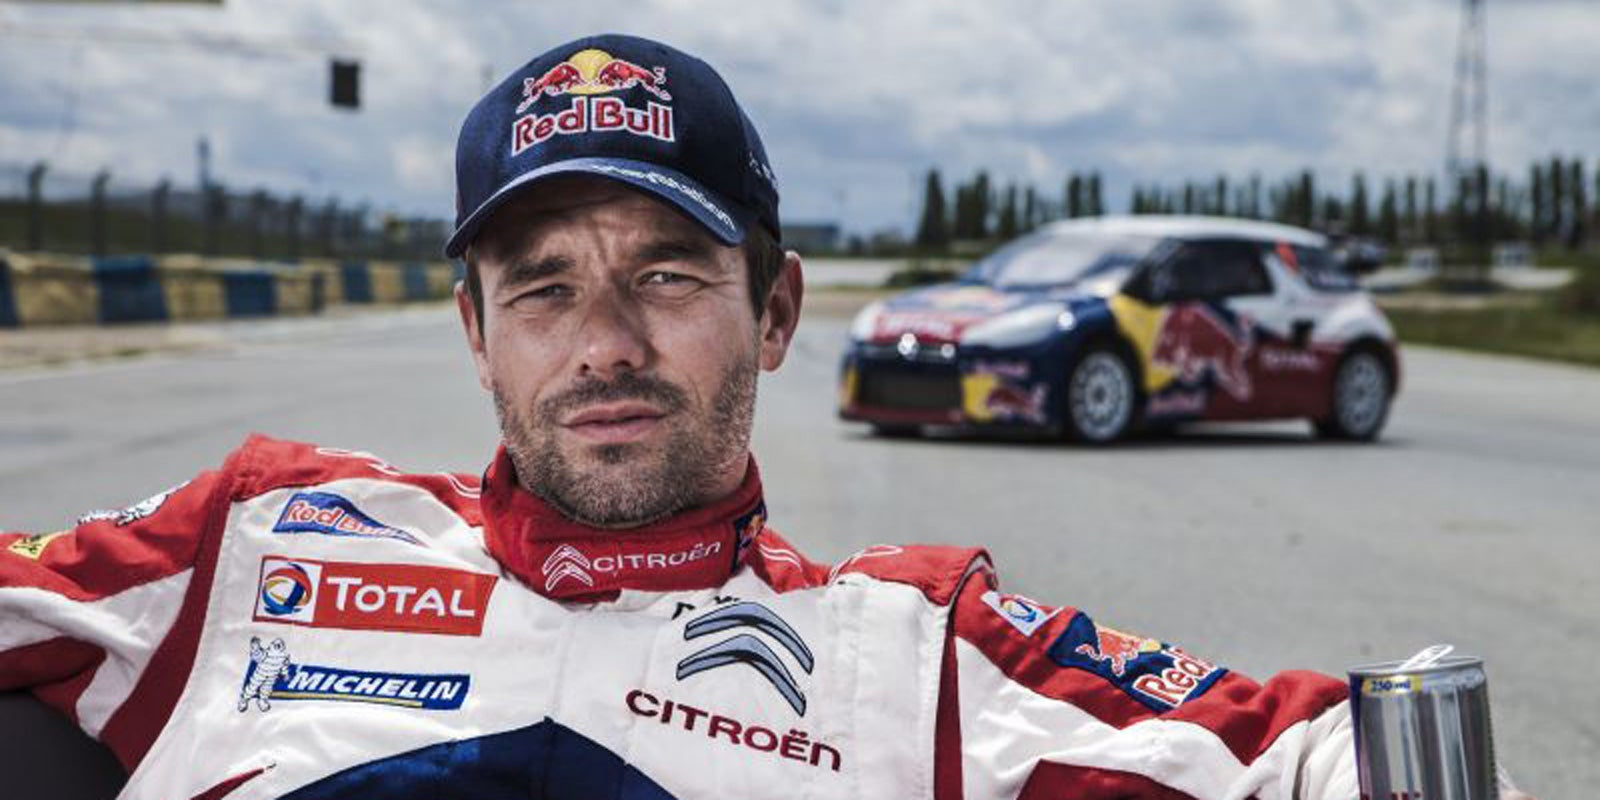 Sébastien Loeb earned a  million dollar salary - leaving the net worth at 4 million in 2018